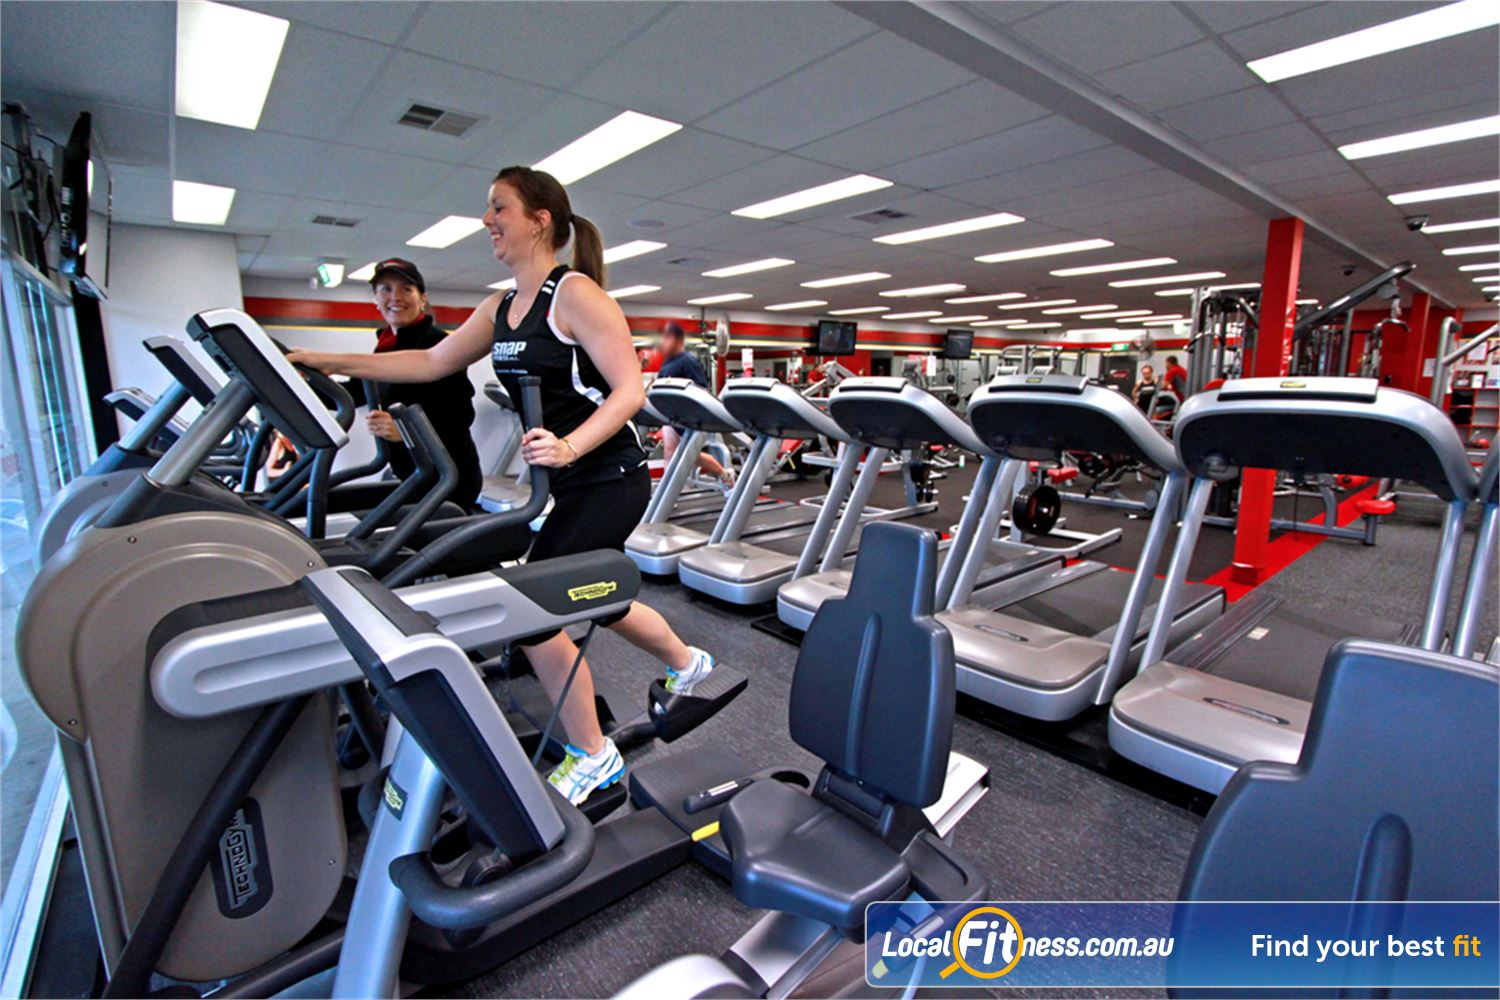 Snap Fitness Near Westlake Vary your workout 24 hours a day with cross trainers, treadmills, cycle bikes and more.